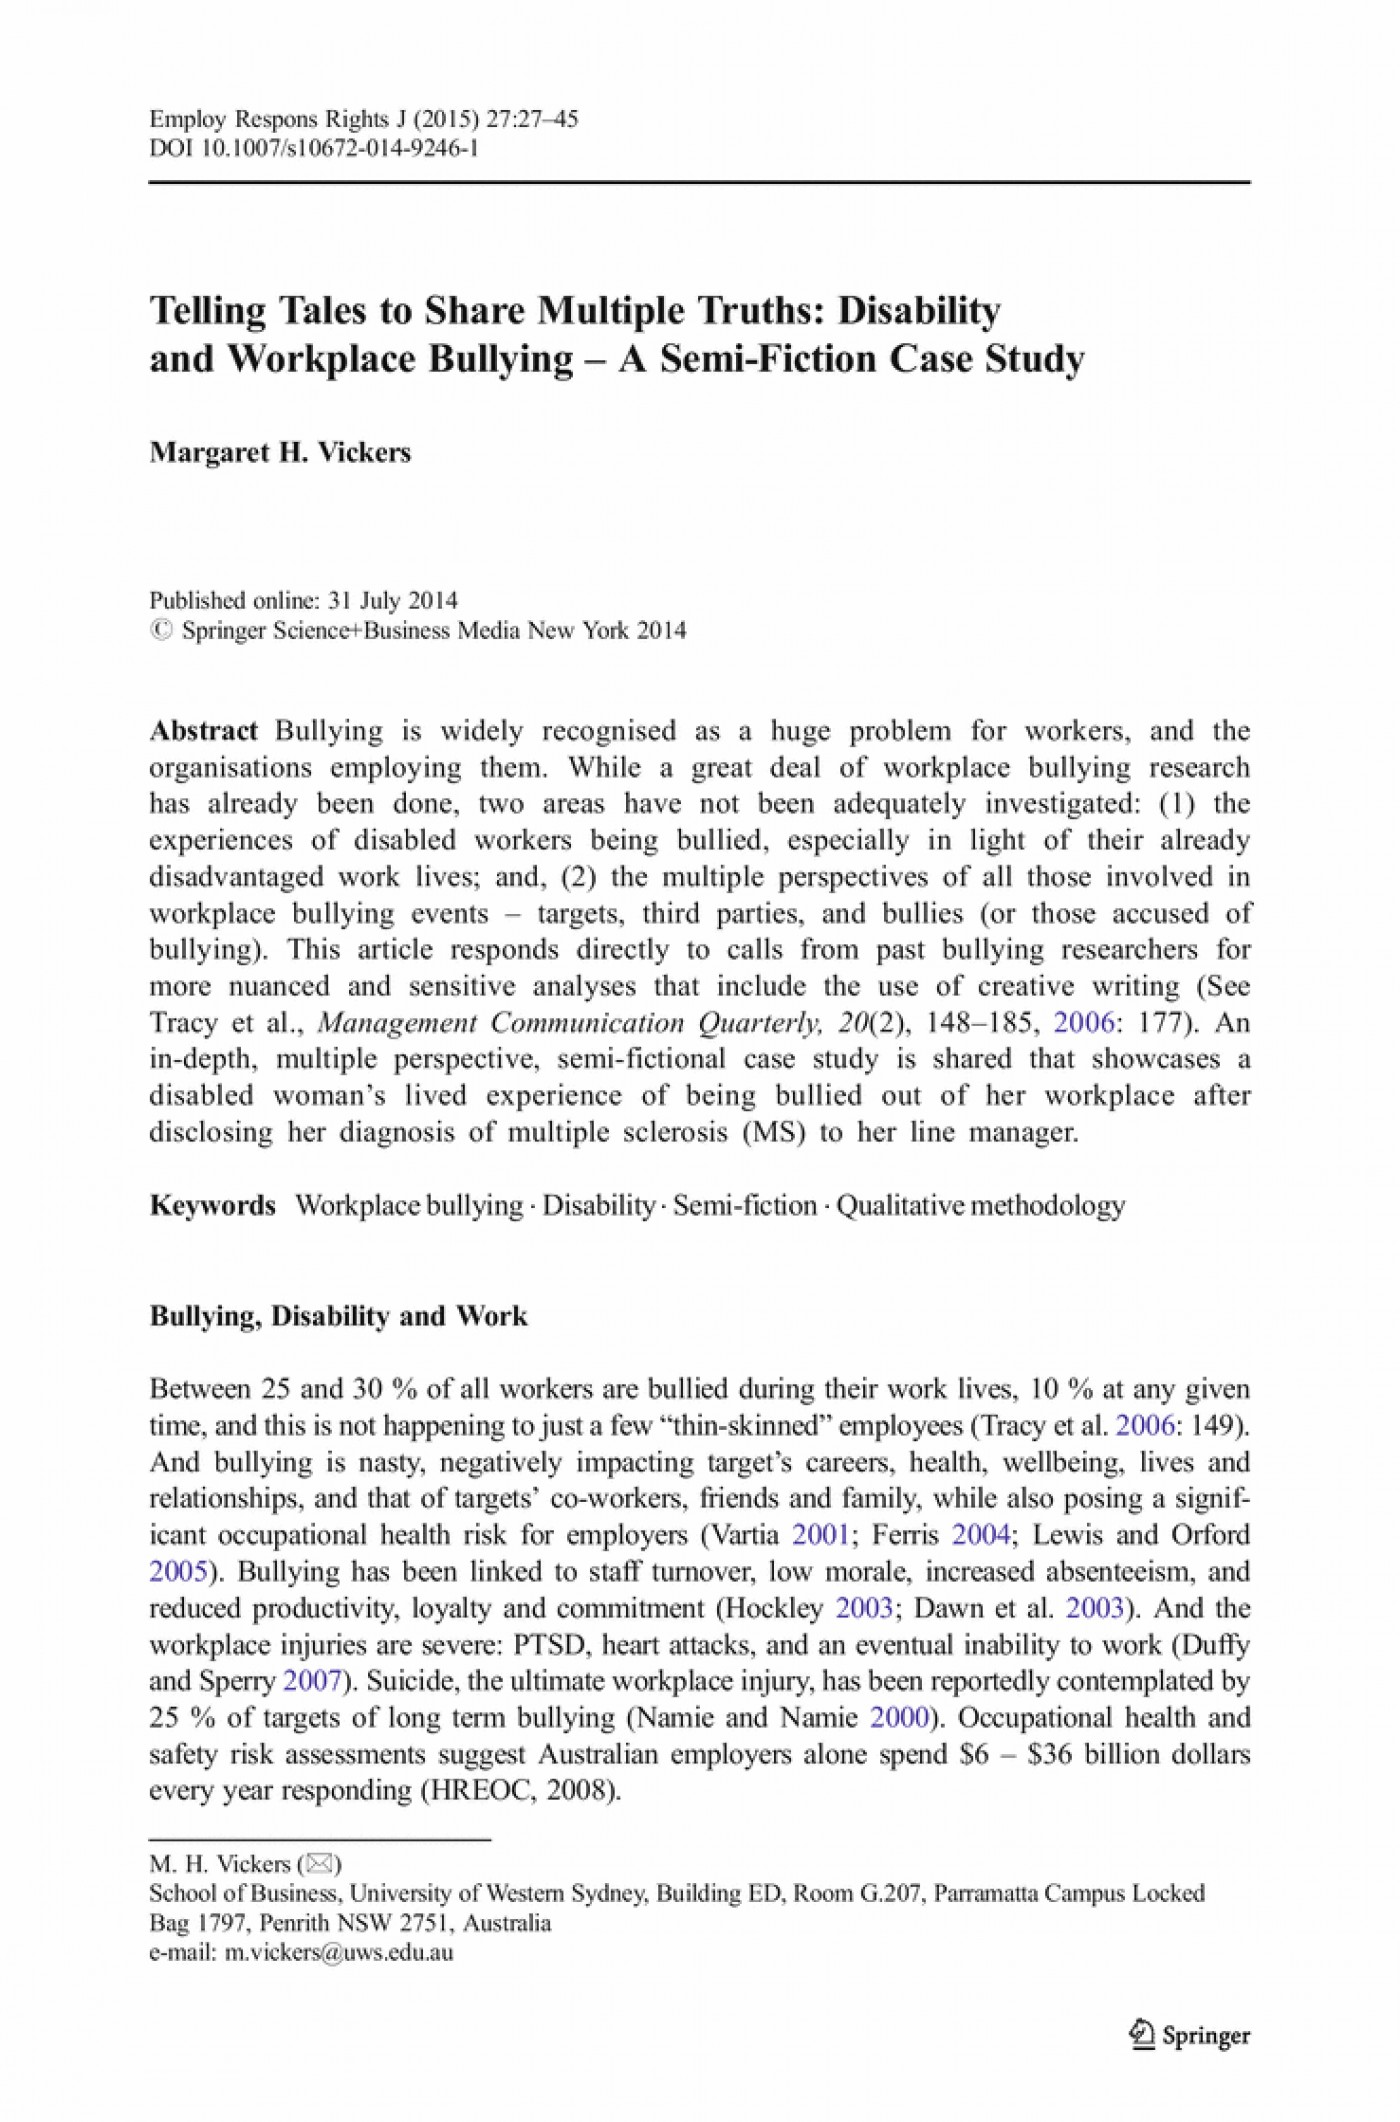 004 Bullying Research Paper Pdf Narrative Essay Buy Original Conclusion To L Imposing Short About Quantitative Effects Of 1400